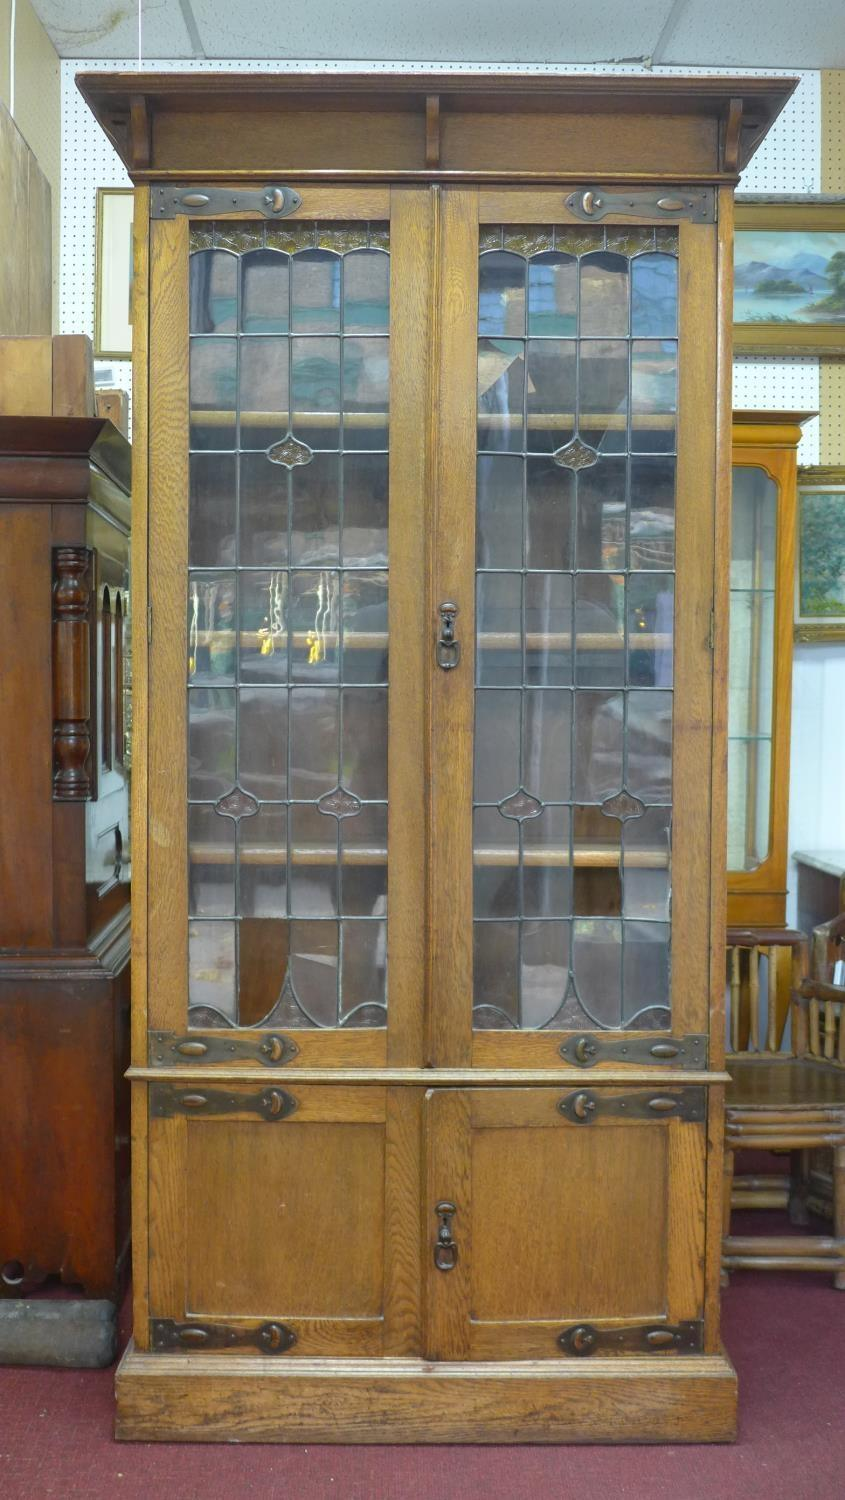 Lot 174 - A 19th century Arts & Crafts oak cabinet with moulded cornice above two leaded glass doors with